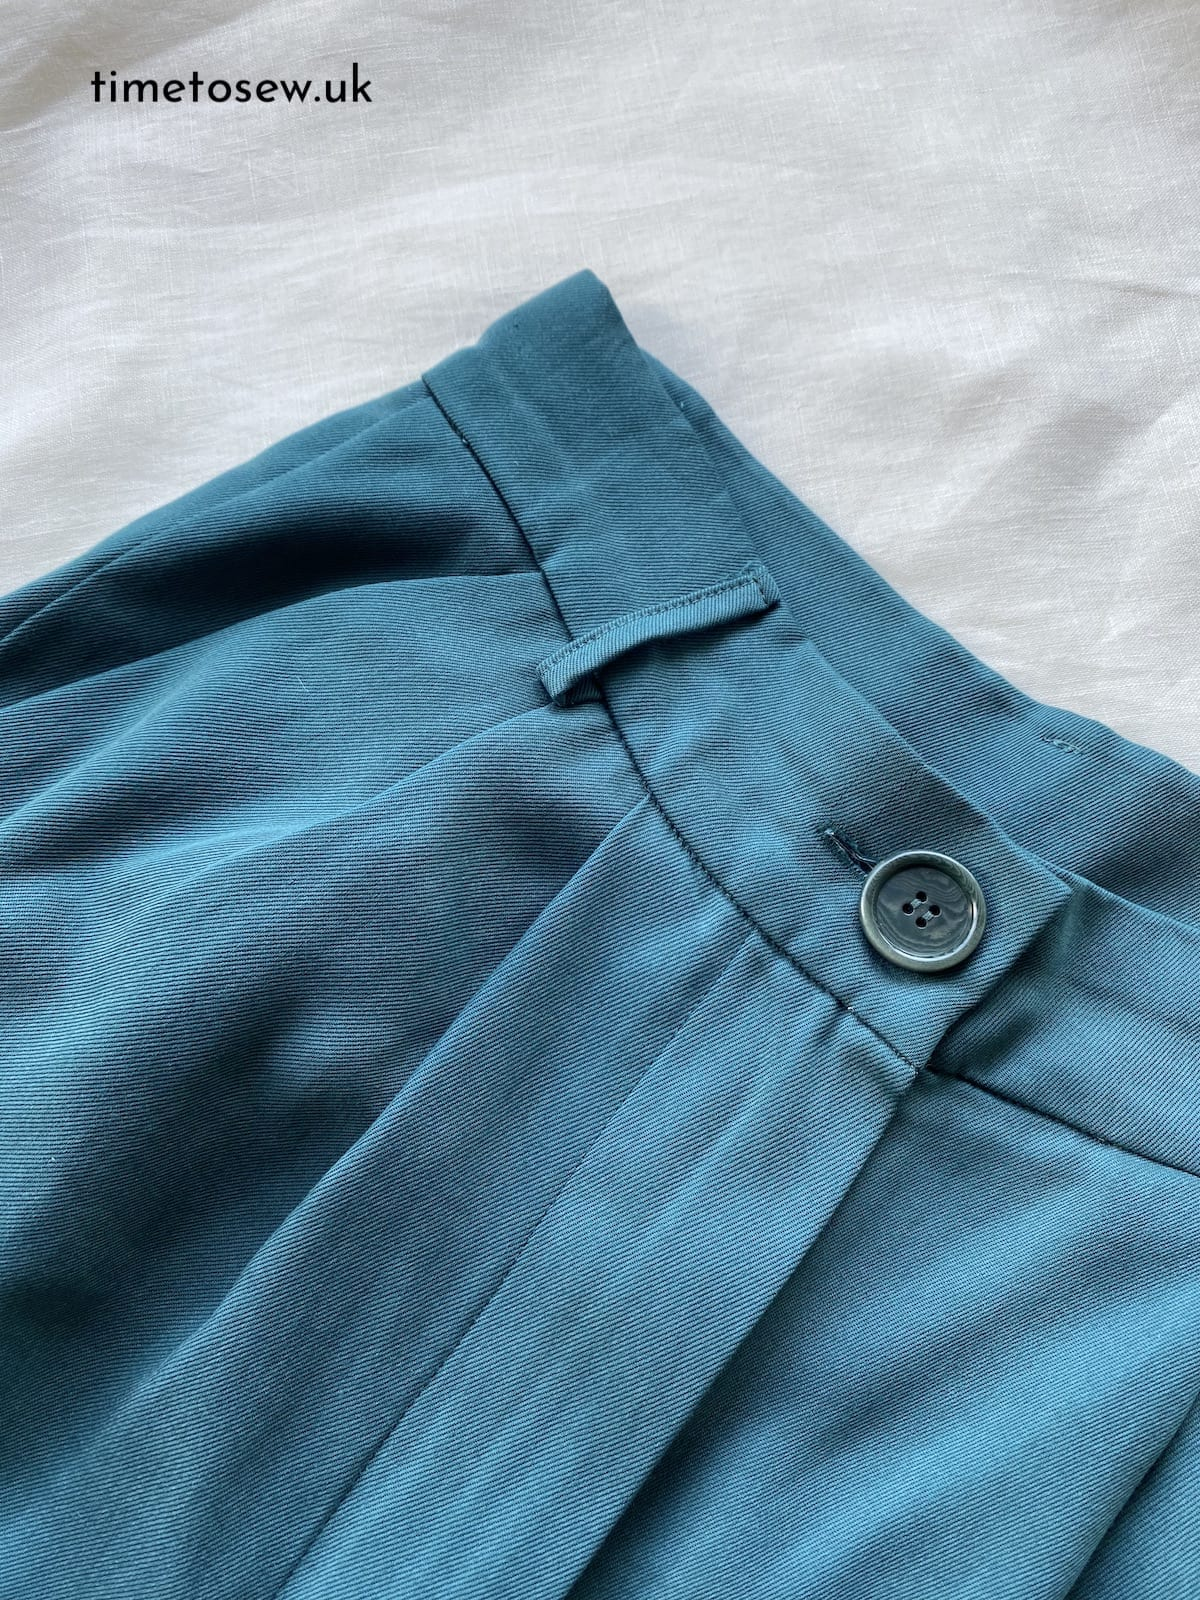 Just Patterns Tatjana Trousers by Time to Sew button close up